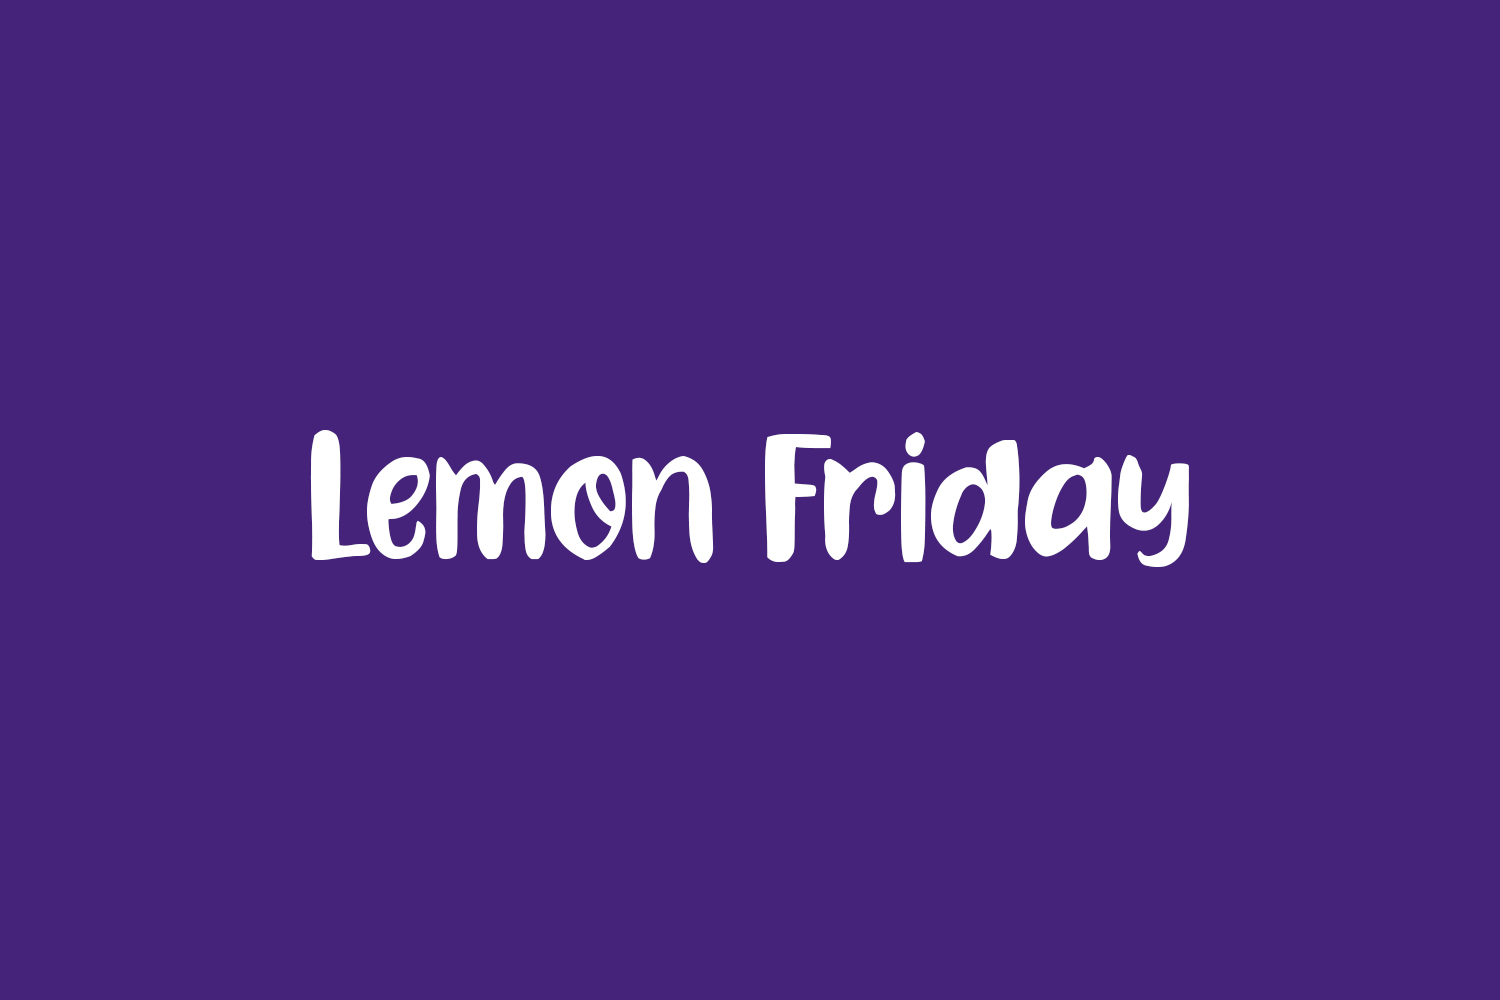 Lemon Friday Free Font